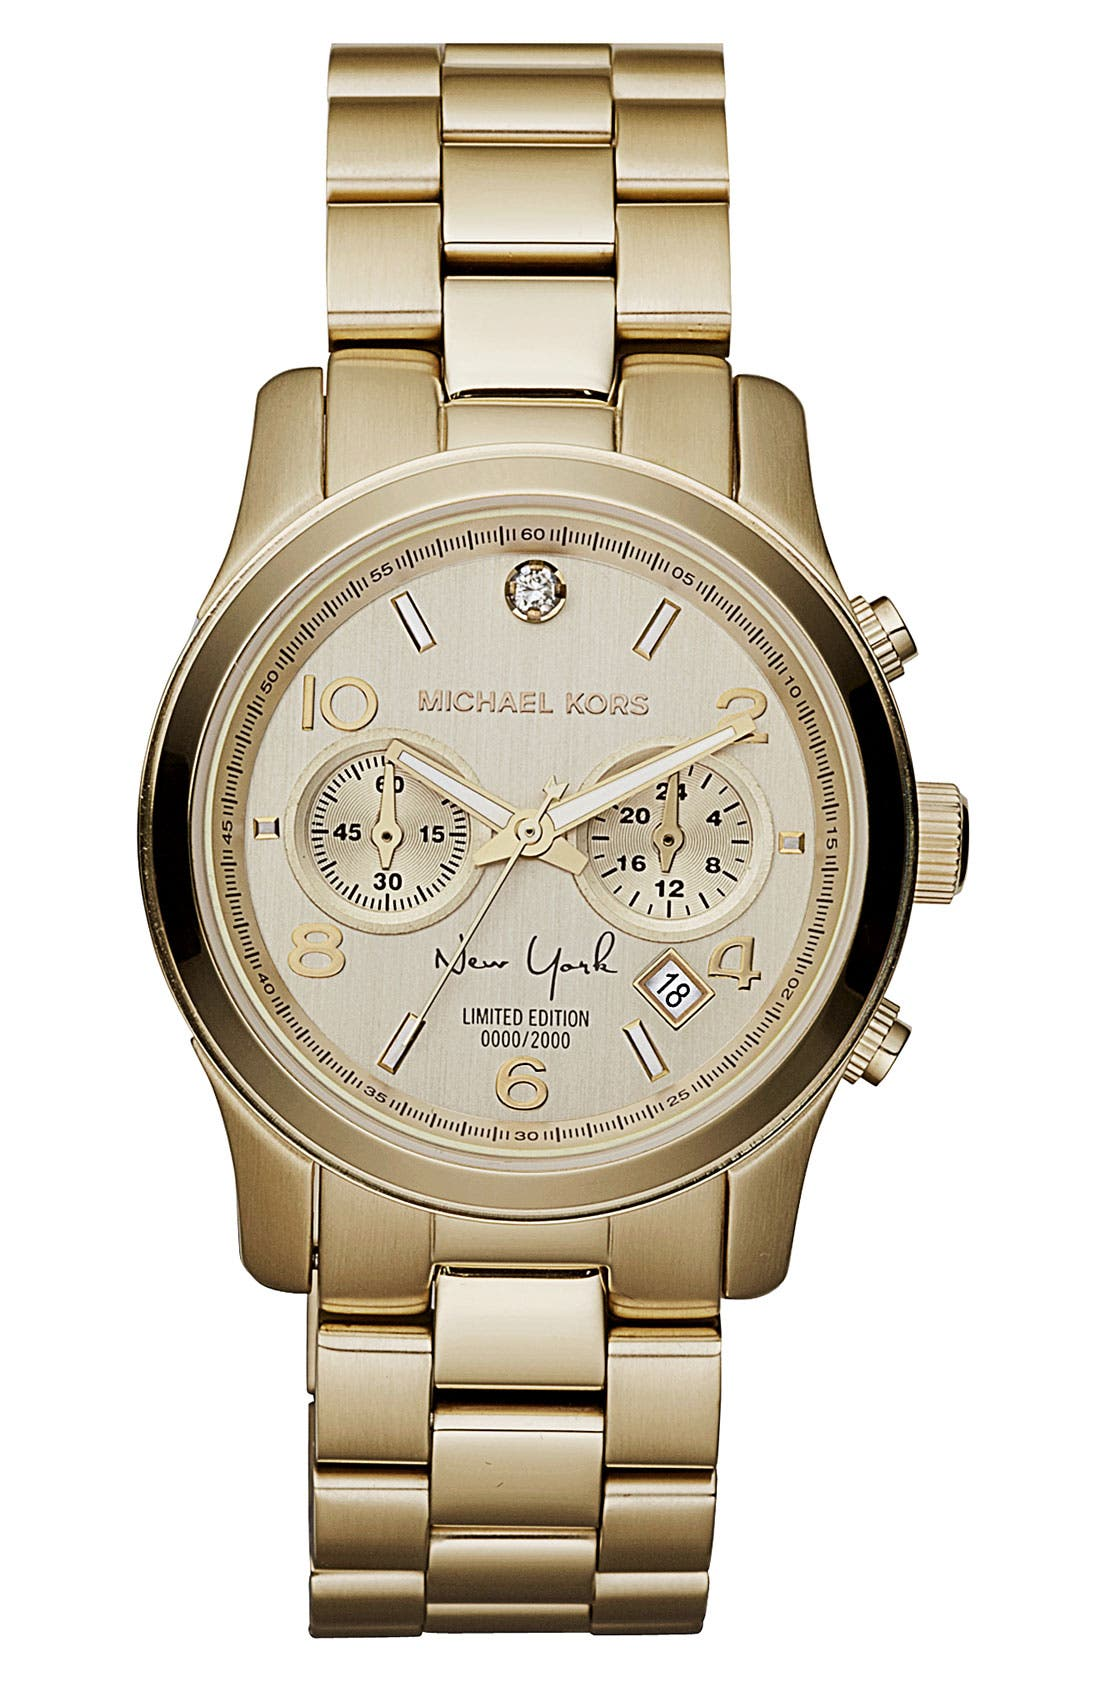 Main Image - Michael Kors 'Runway - New York' Chronograph Bracelet Watch, 38mm (Limited Edition)